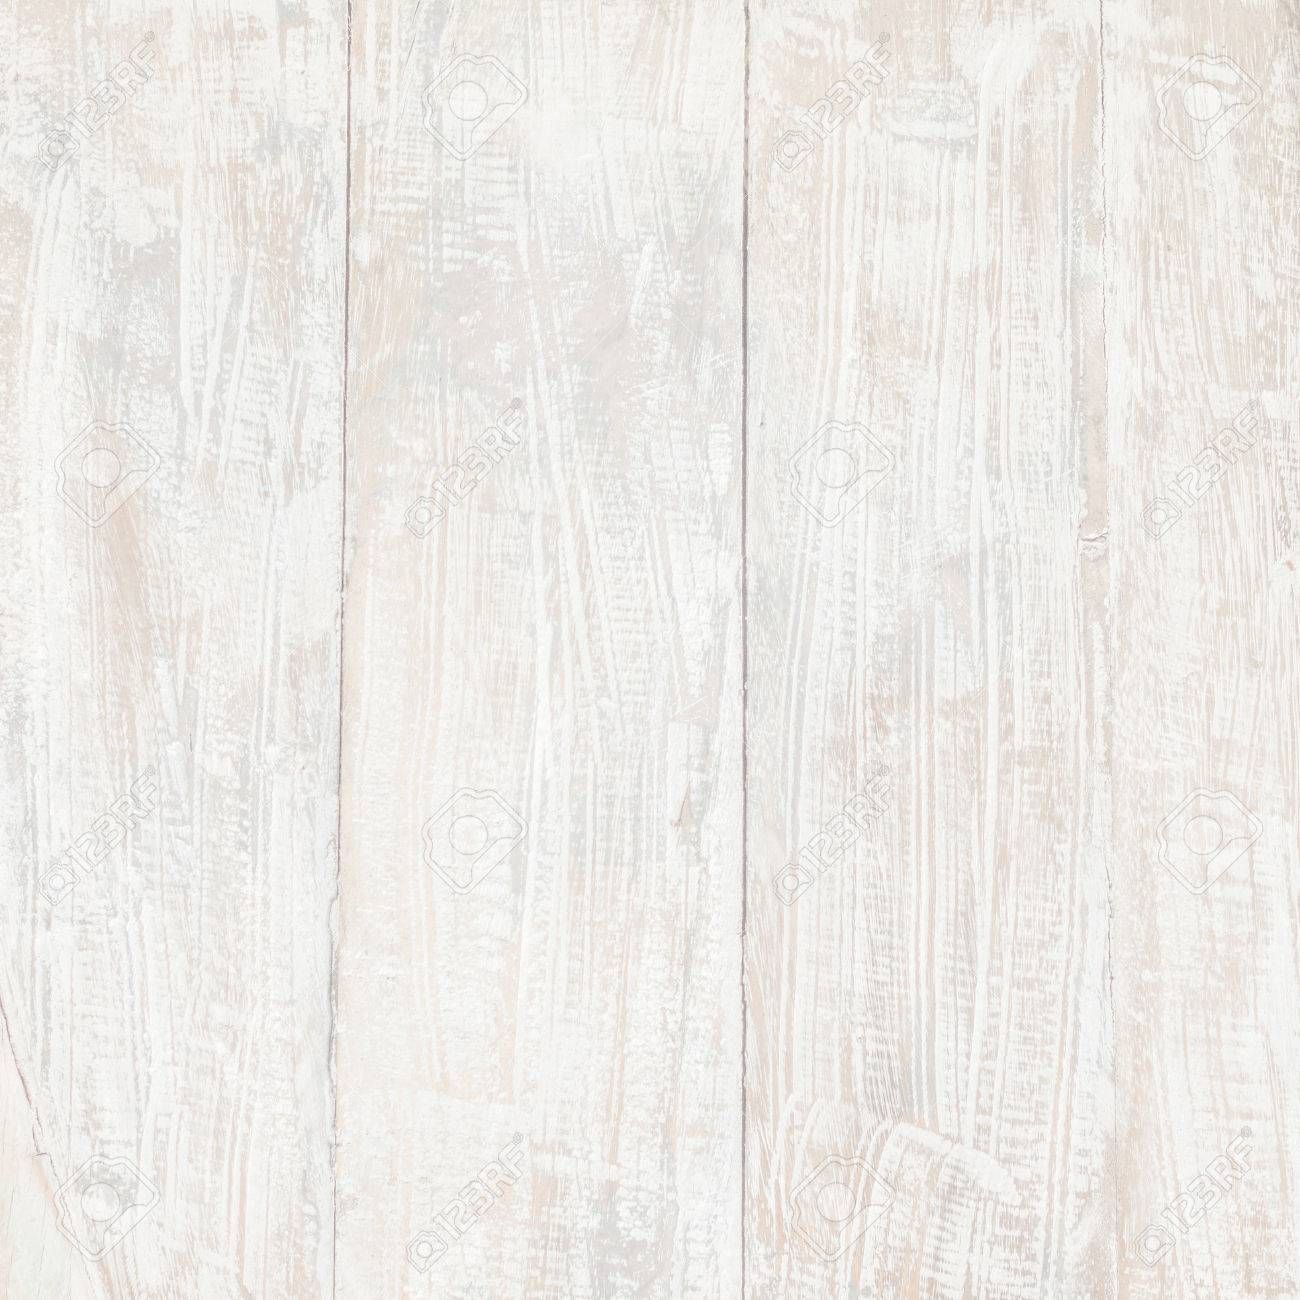 White Wood Table Texture Background Wooden Top View Stock